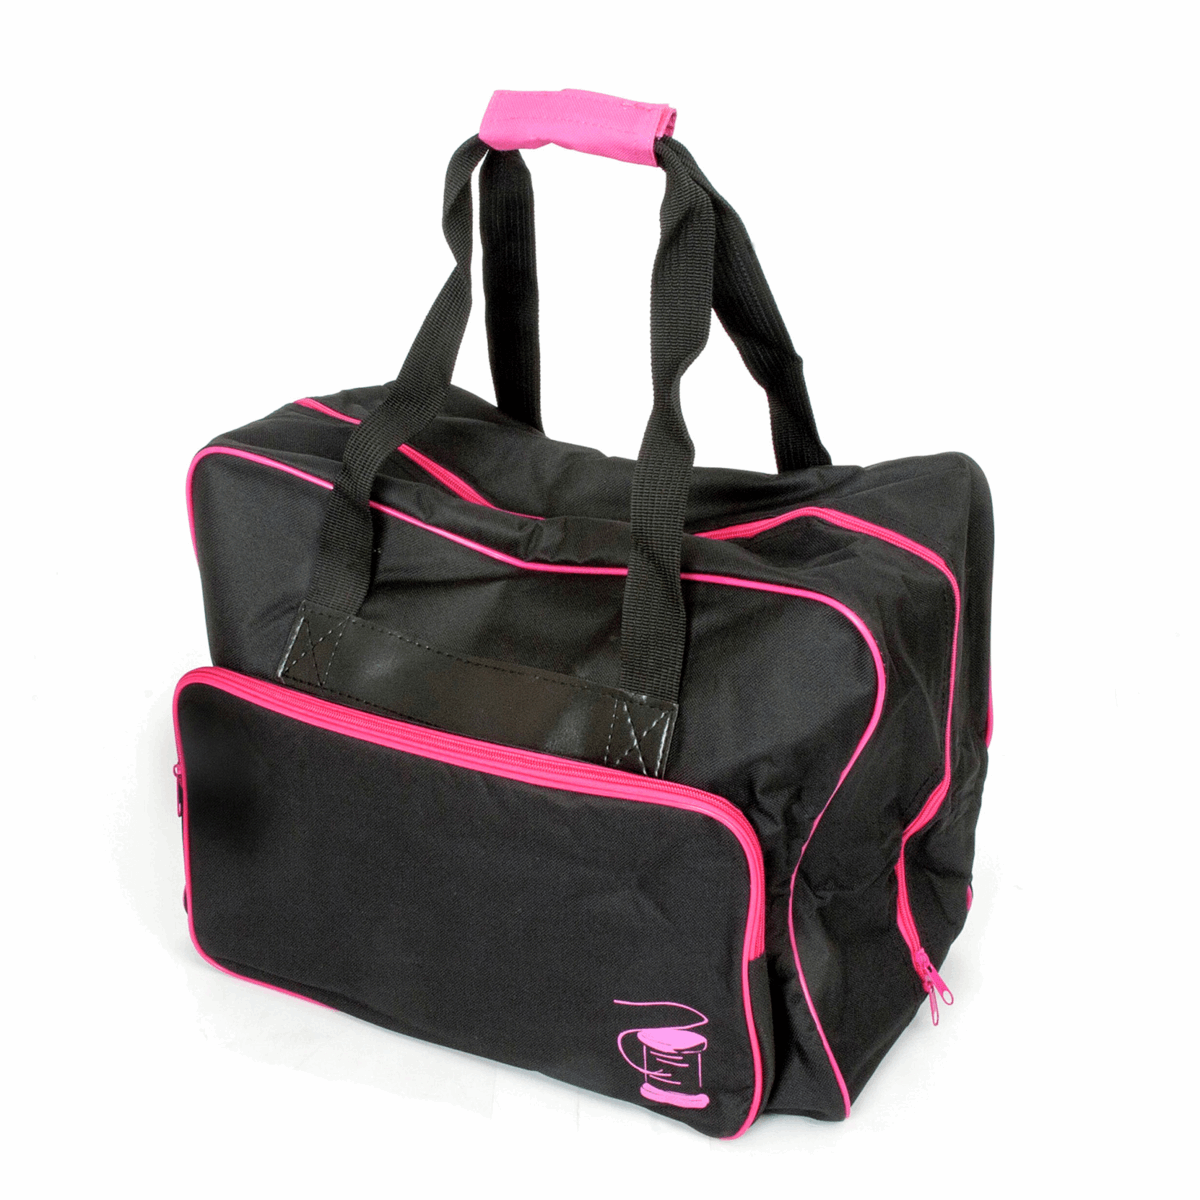 Black and Pink Sewing Machine Bag